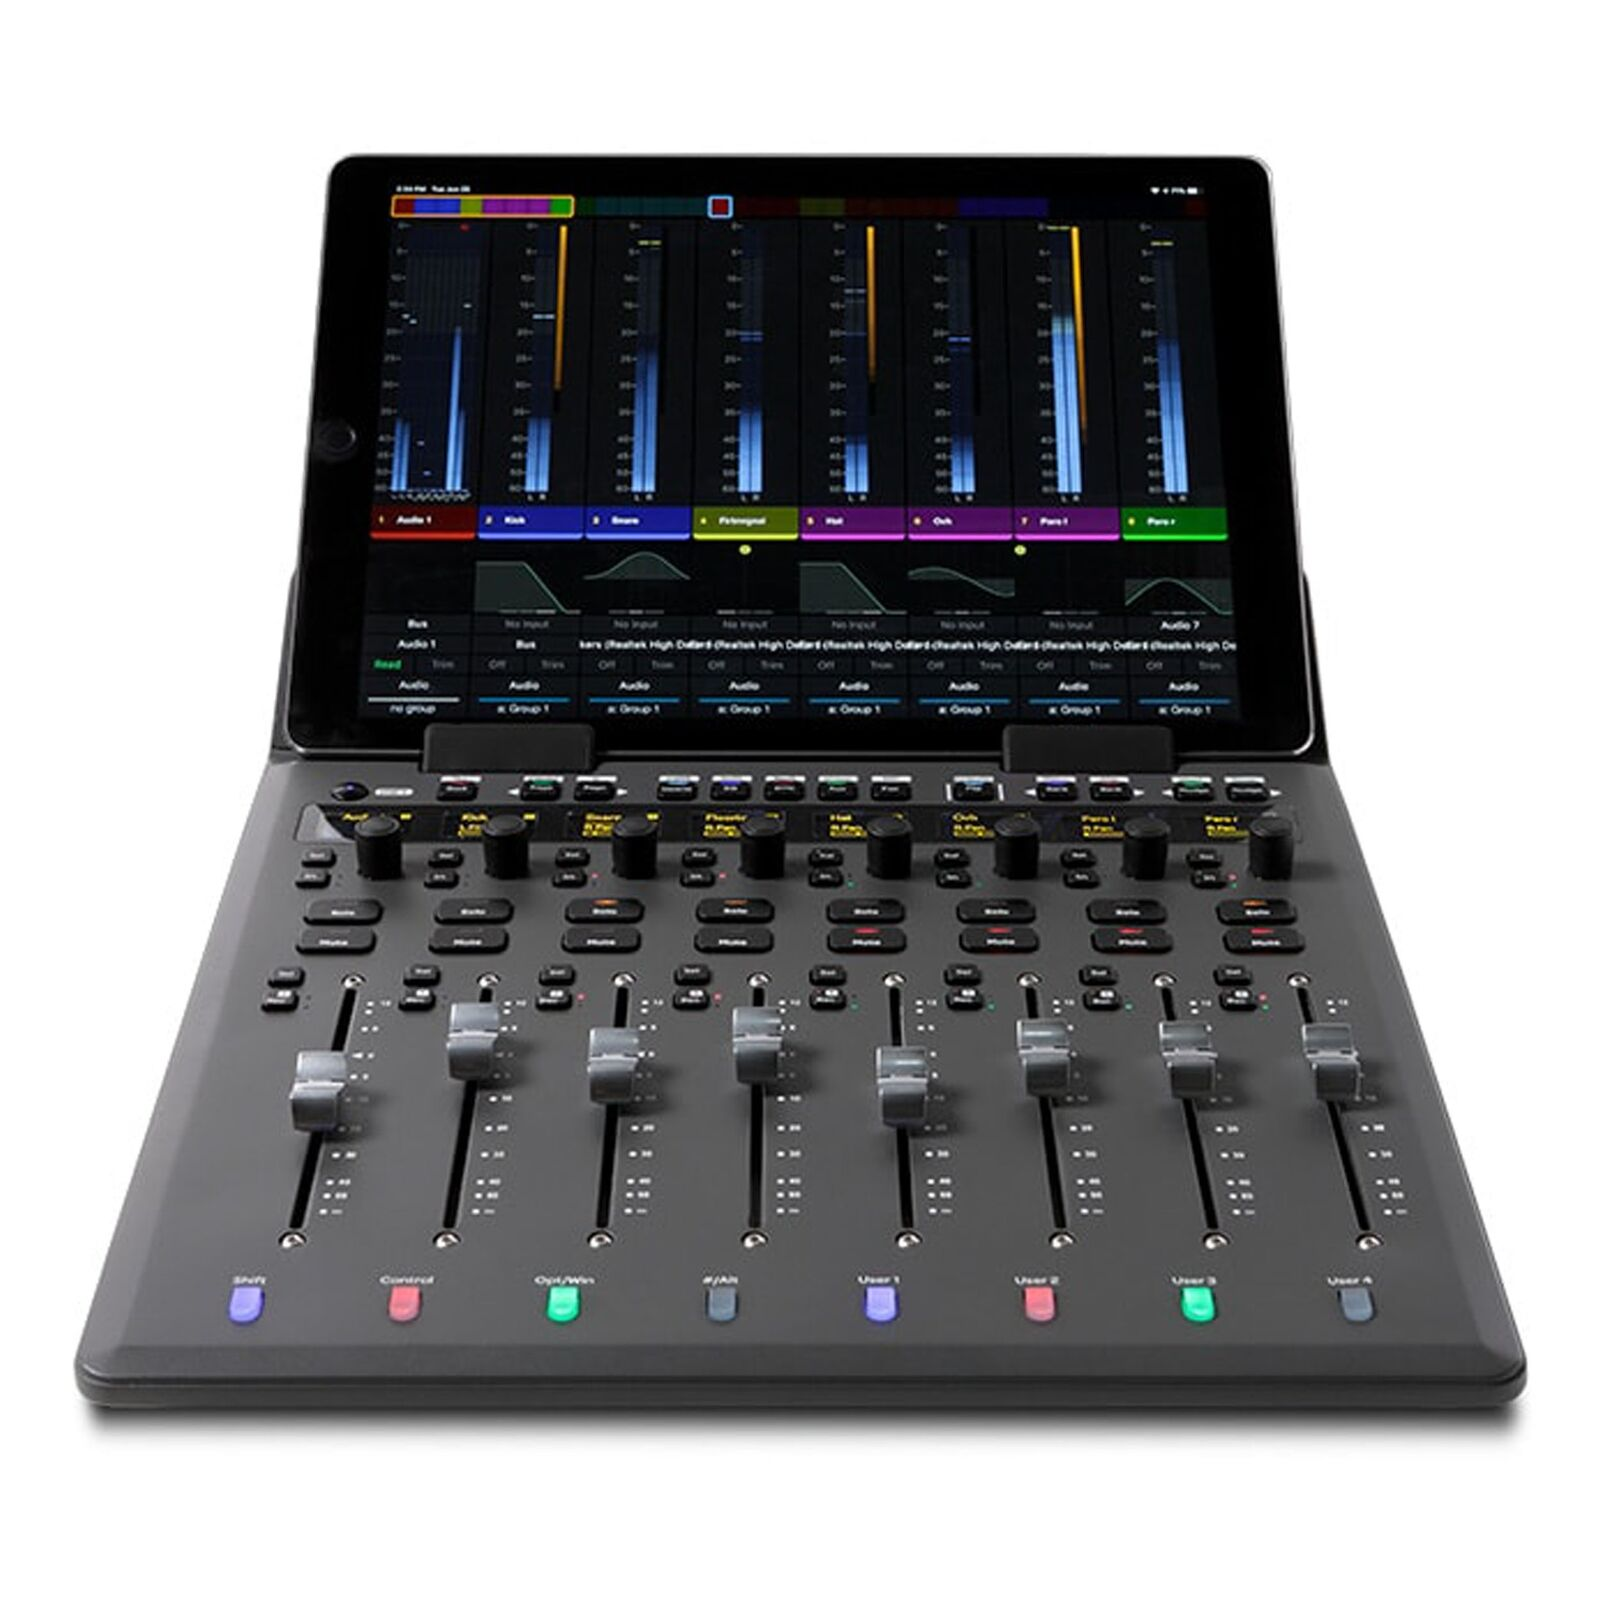 Avid S1 Control Surface. Buy it now for 1165.50